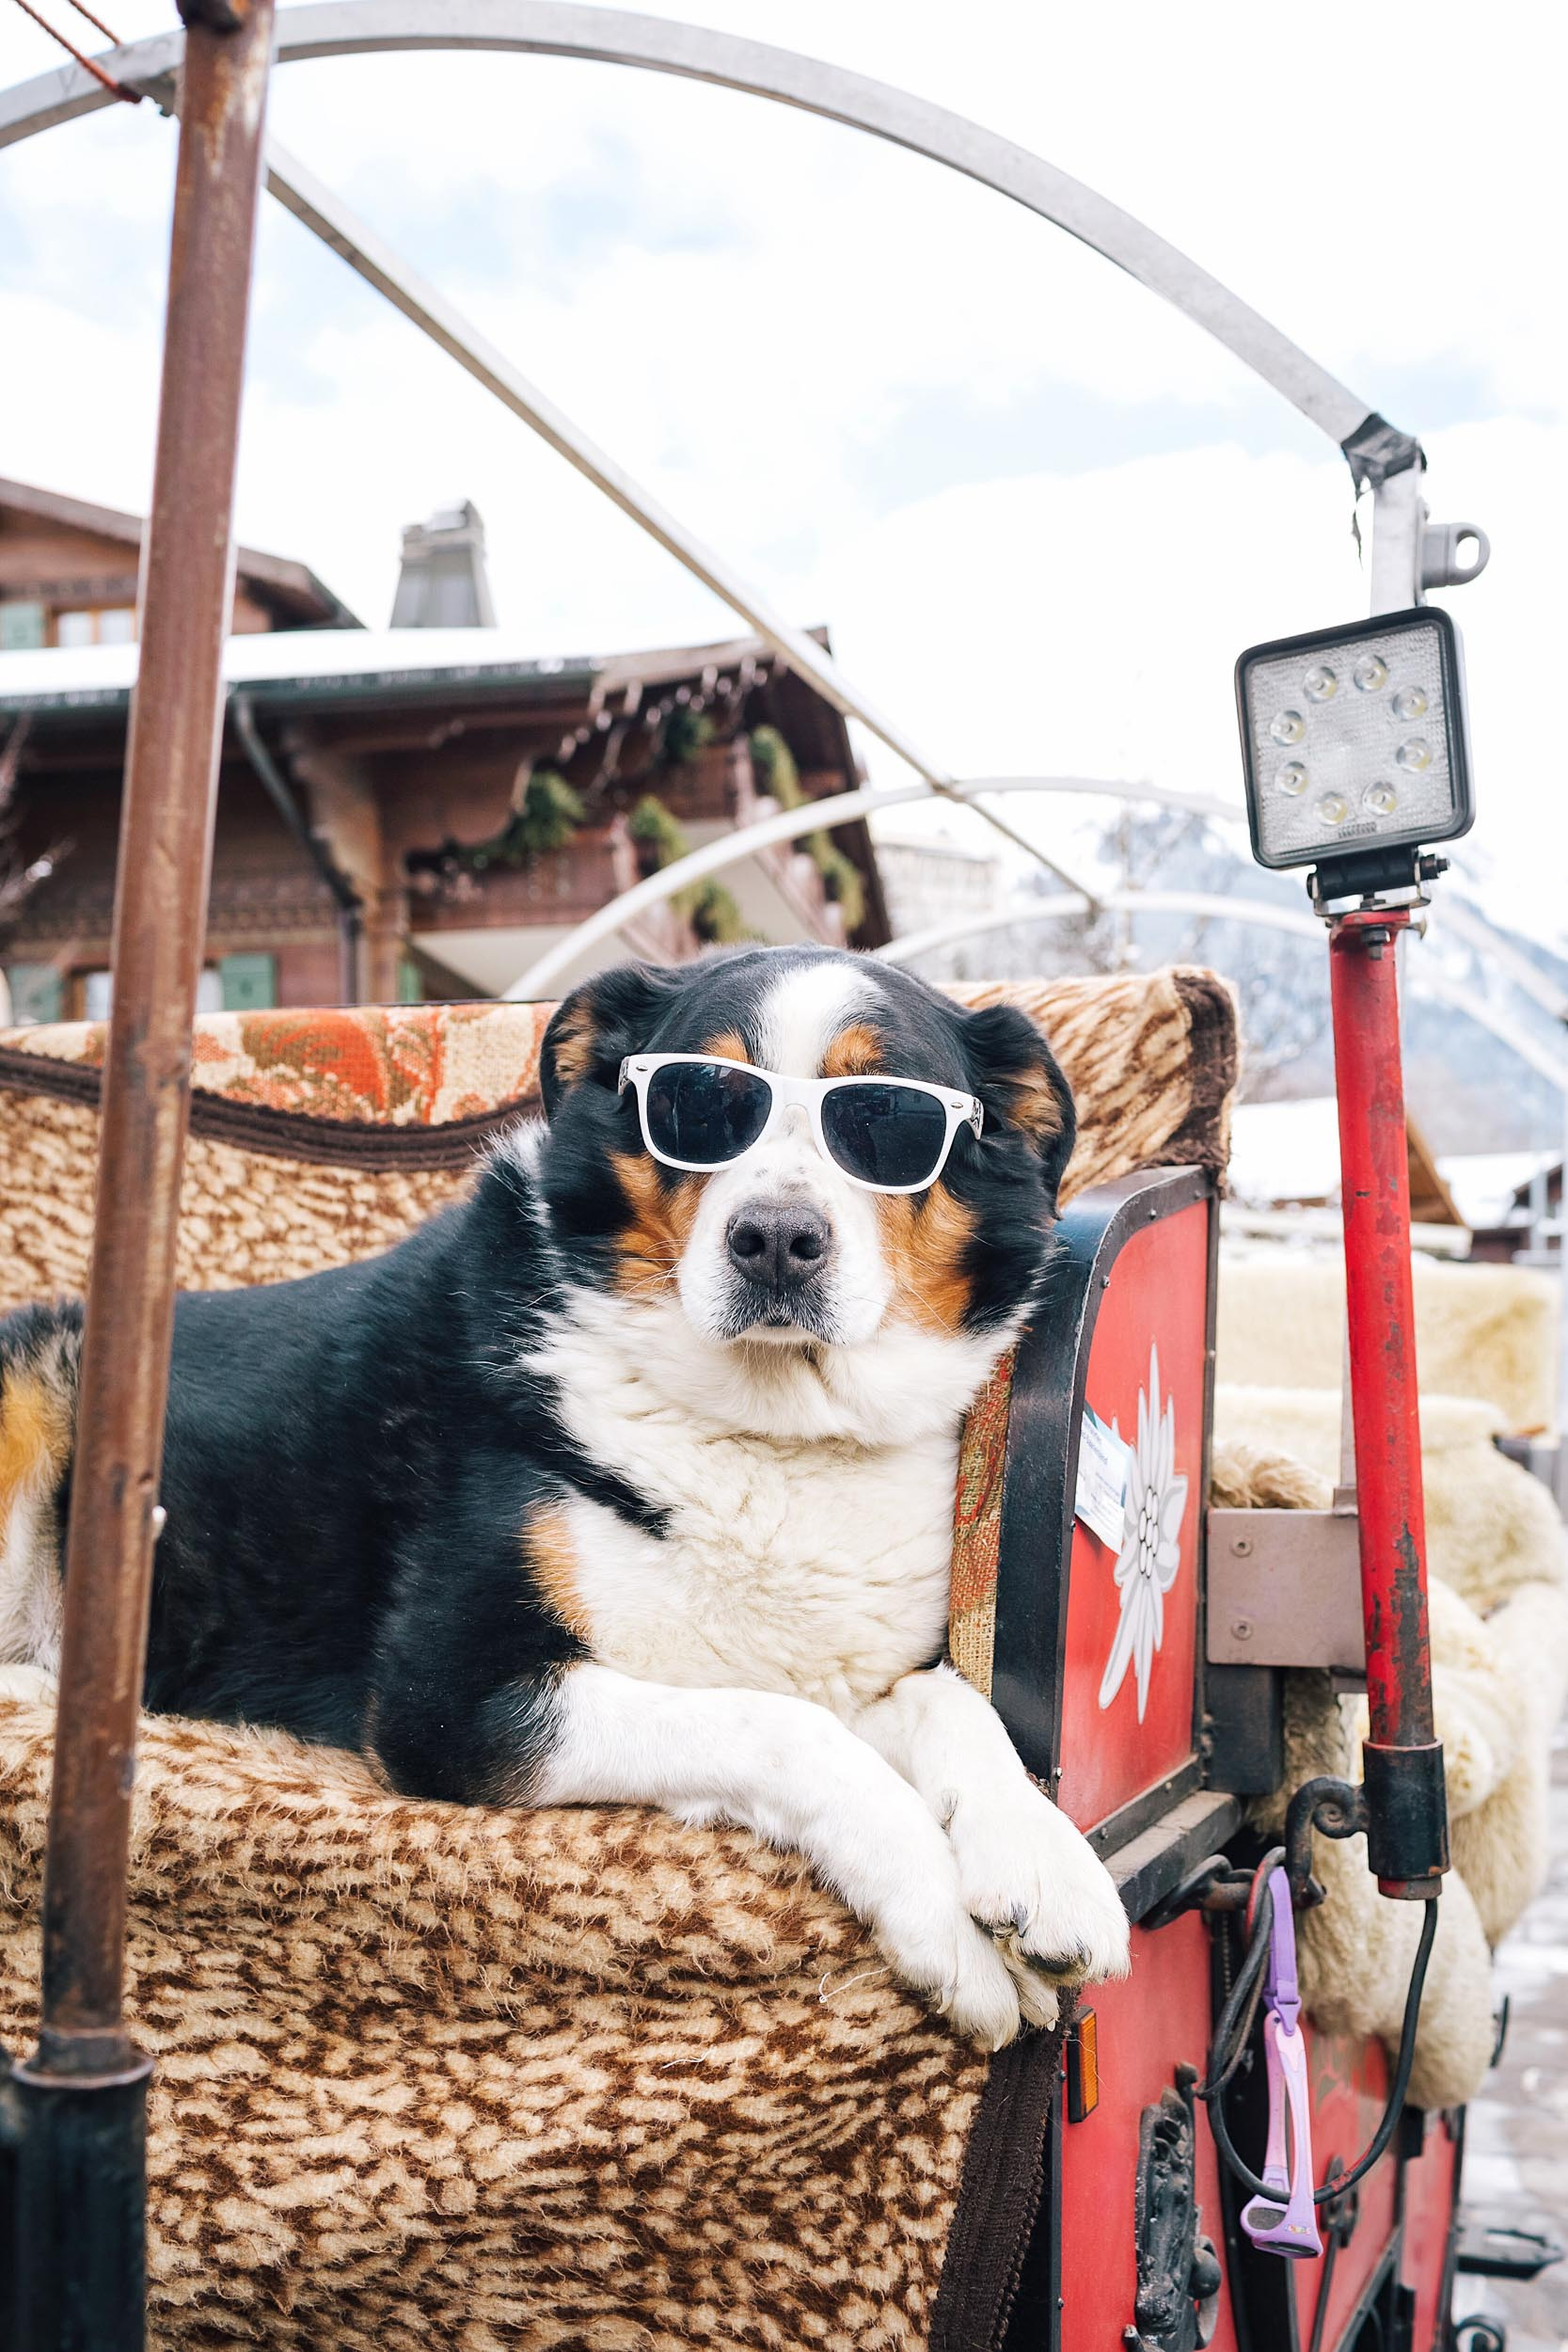 Nico, an adorable pup riding his owner's horse and carriage in Gstaad, Switzerland